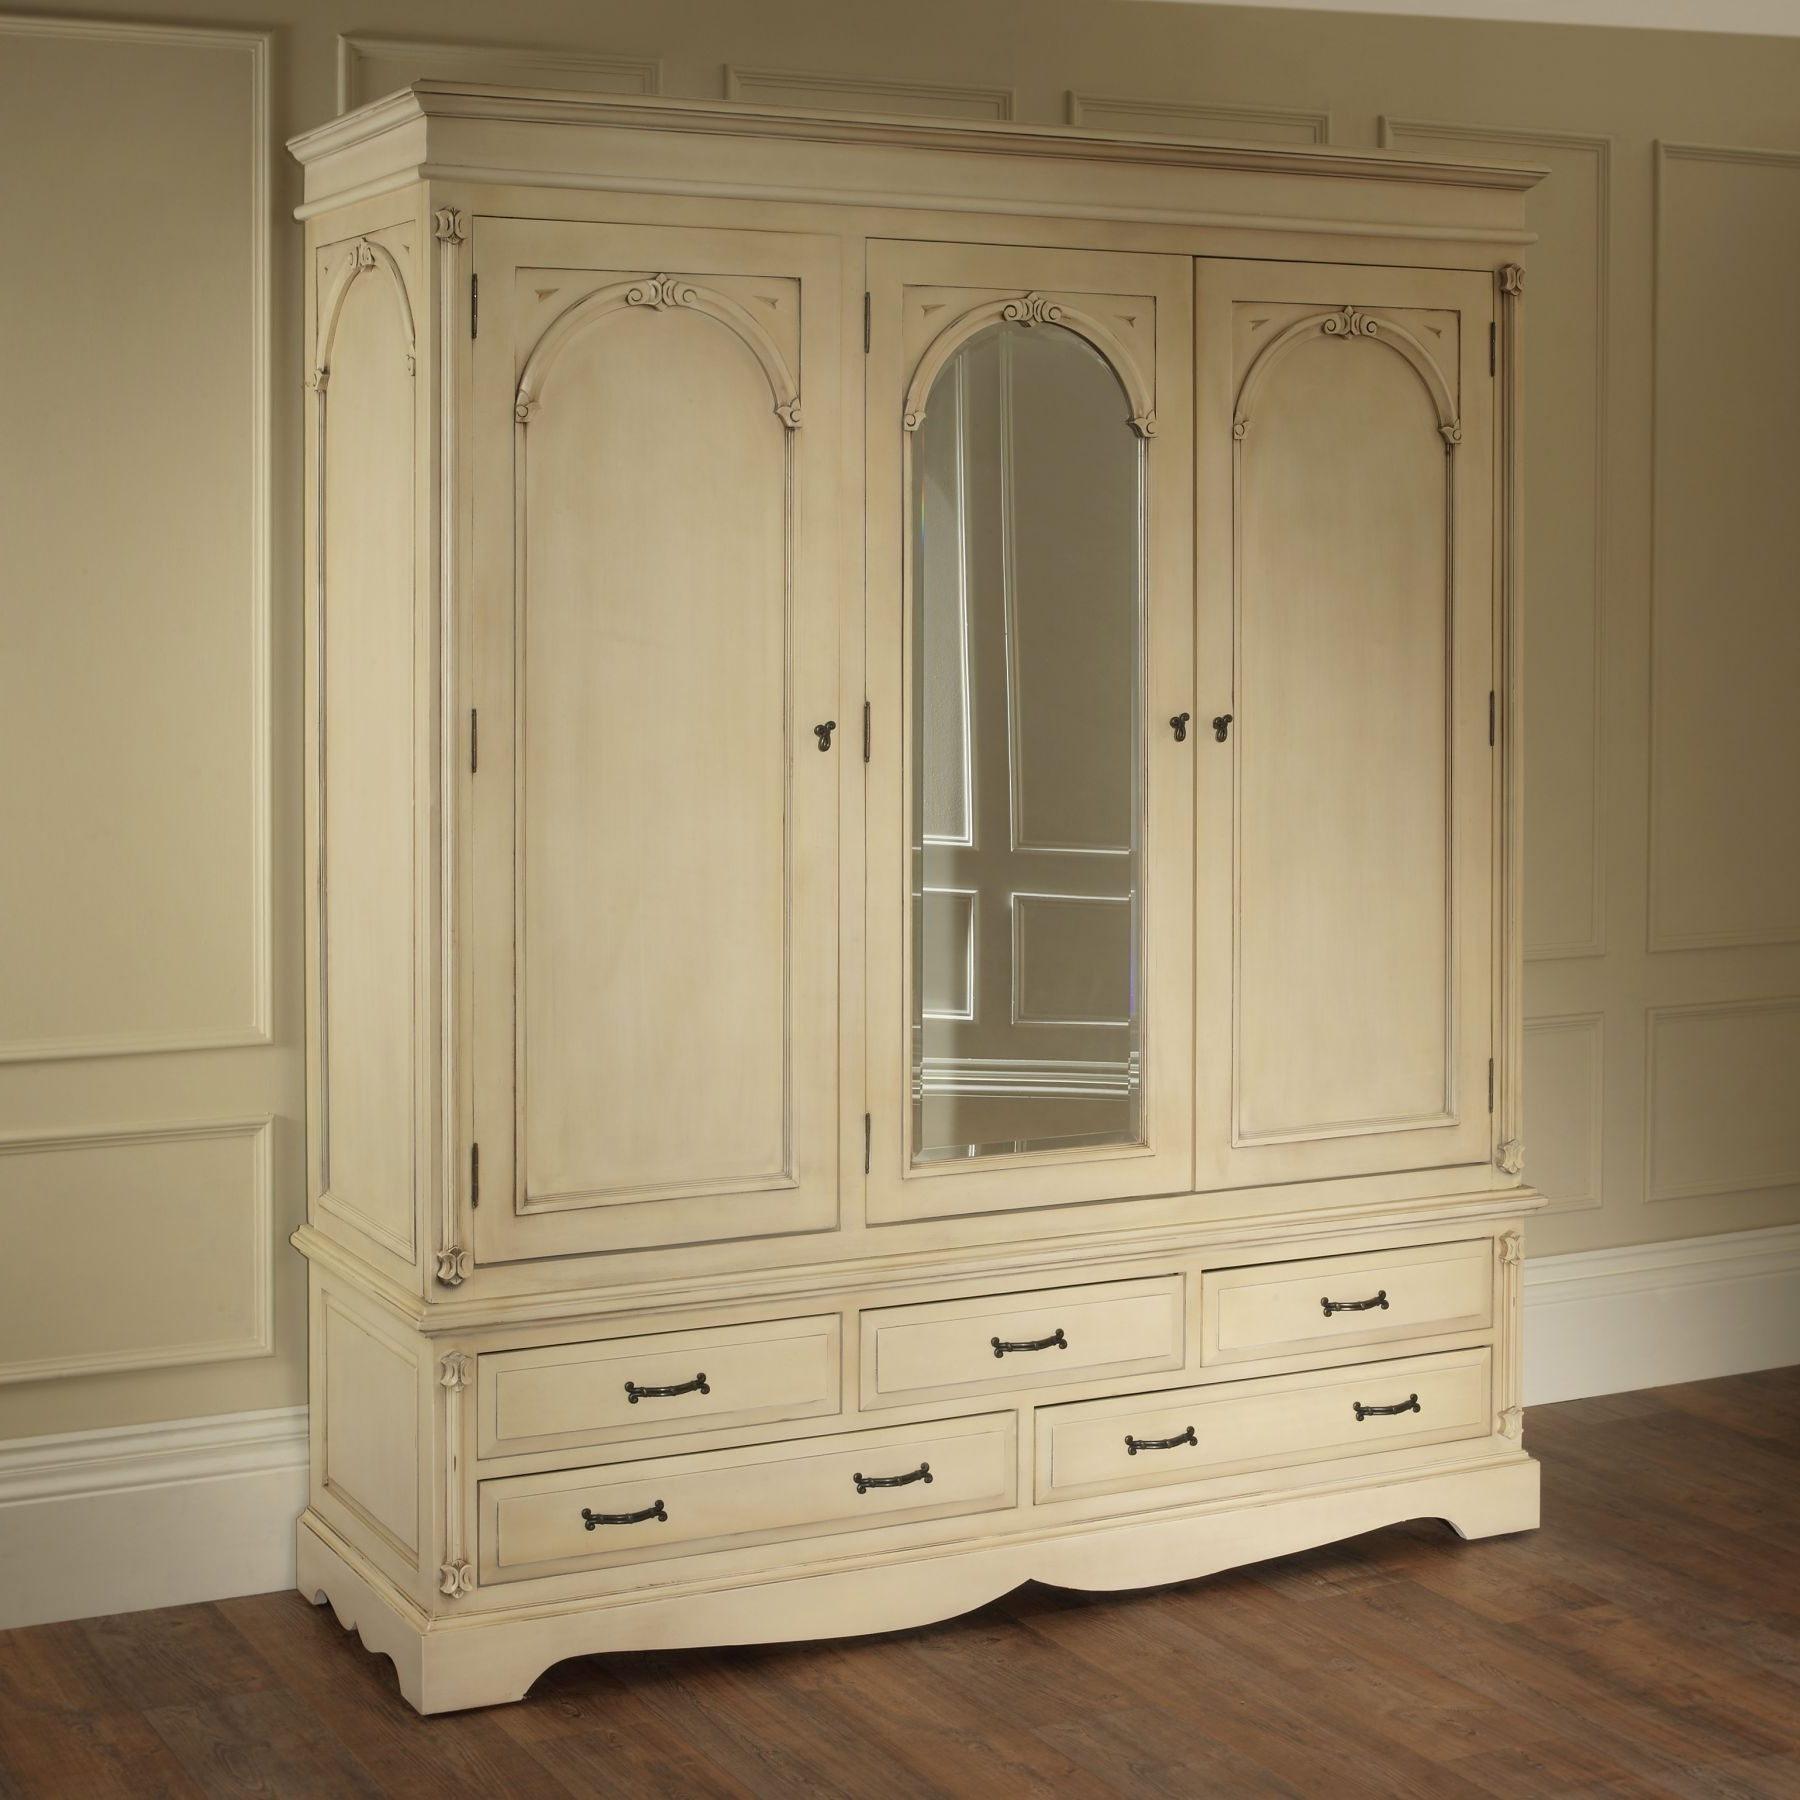 Most Popular Victorian Antique French Wardrobe Works Wonderful Alongside Our Intended For Victorian Style Wardrobes (View 3 of 15)